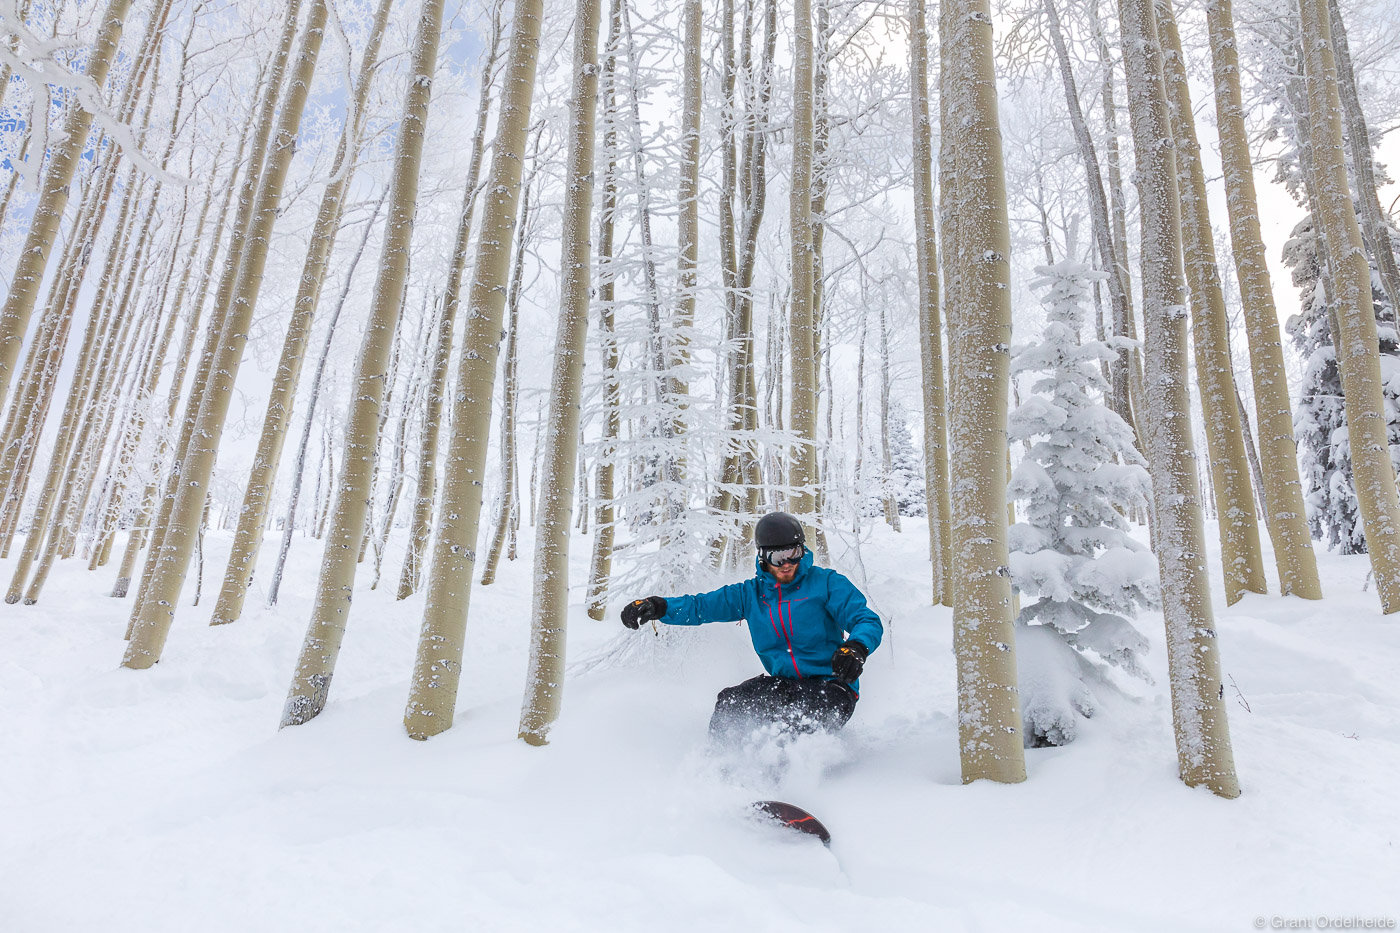 """A male snowboarder enjoys """"Champagne Powder"""" in a grove of aspen trees in Colorado's Steamboat Springs Ski Resort."""